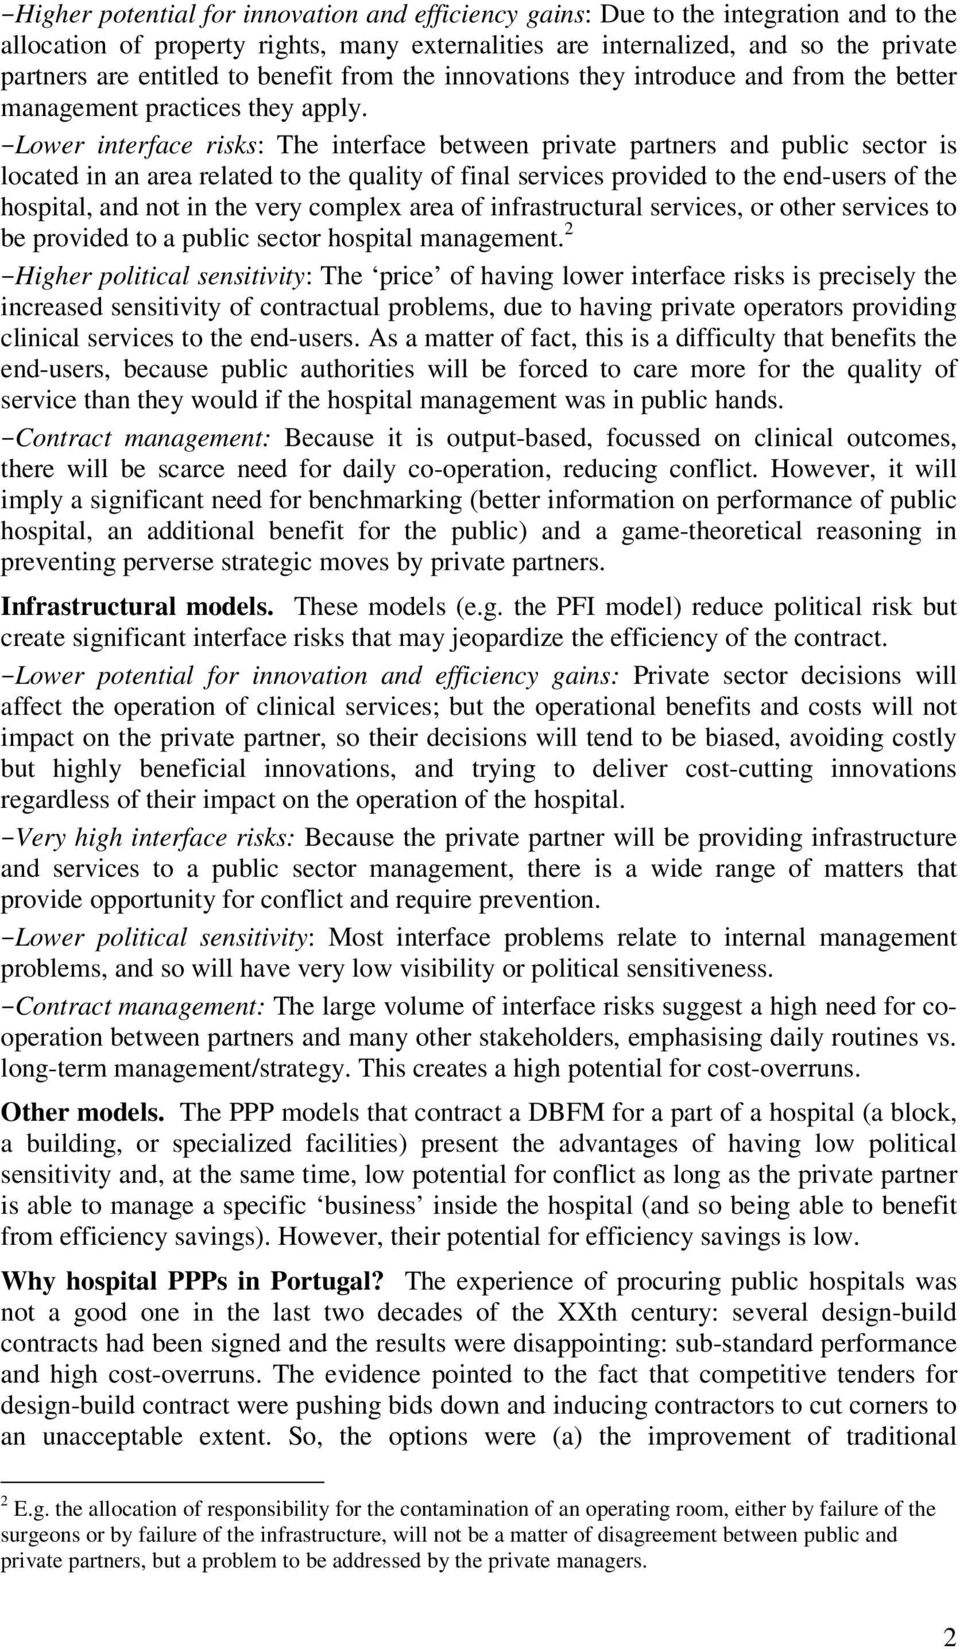 Lower interface risks: The interface between private partners and public sector is located in an area related to the quality of final services provided to the end-users of the hospital, and not in